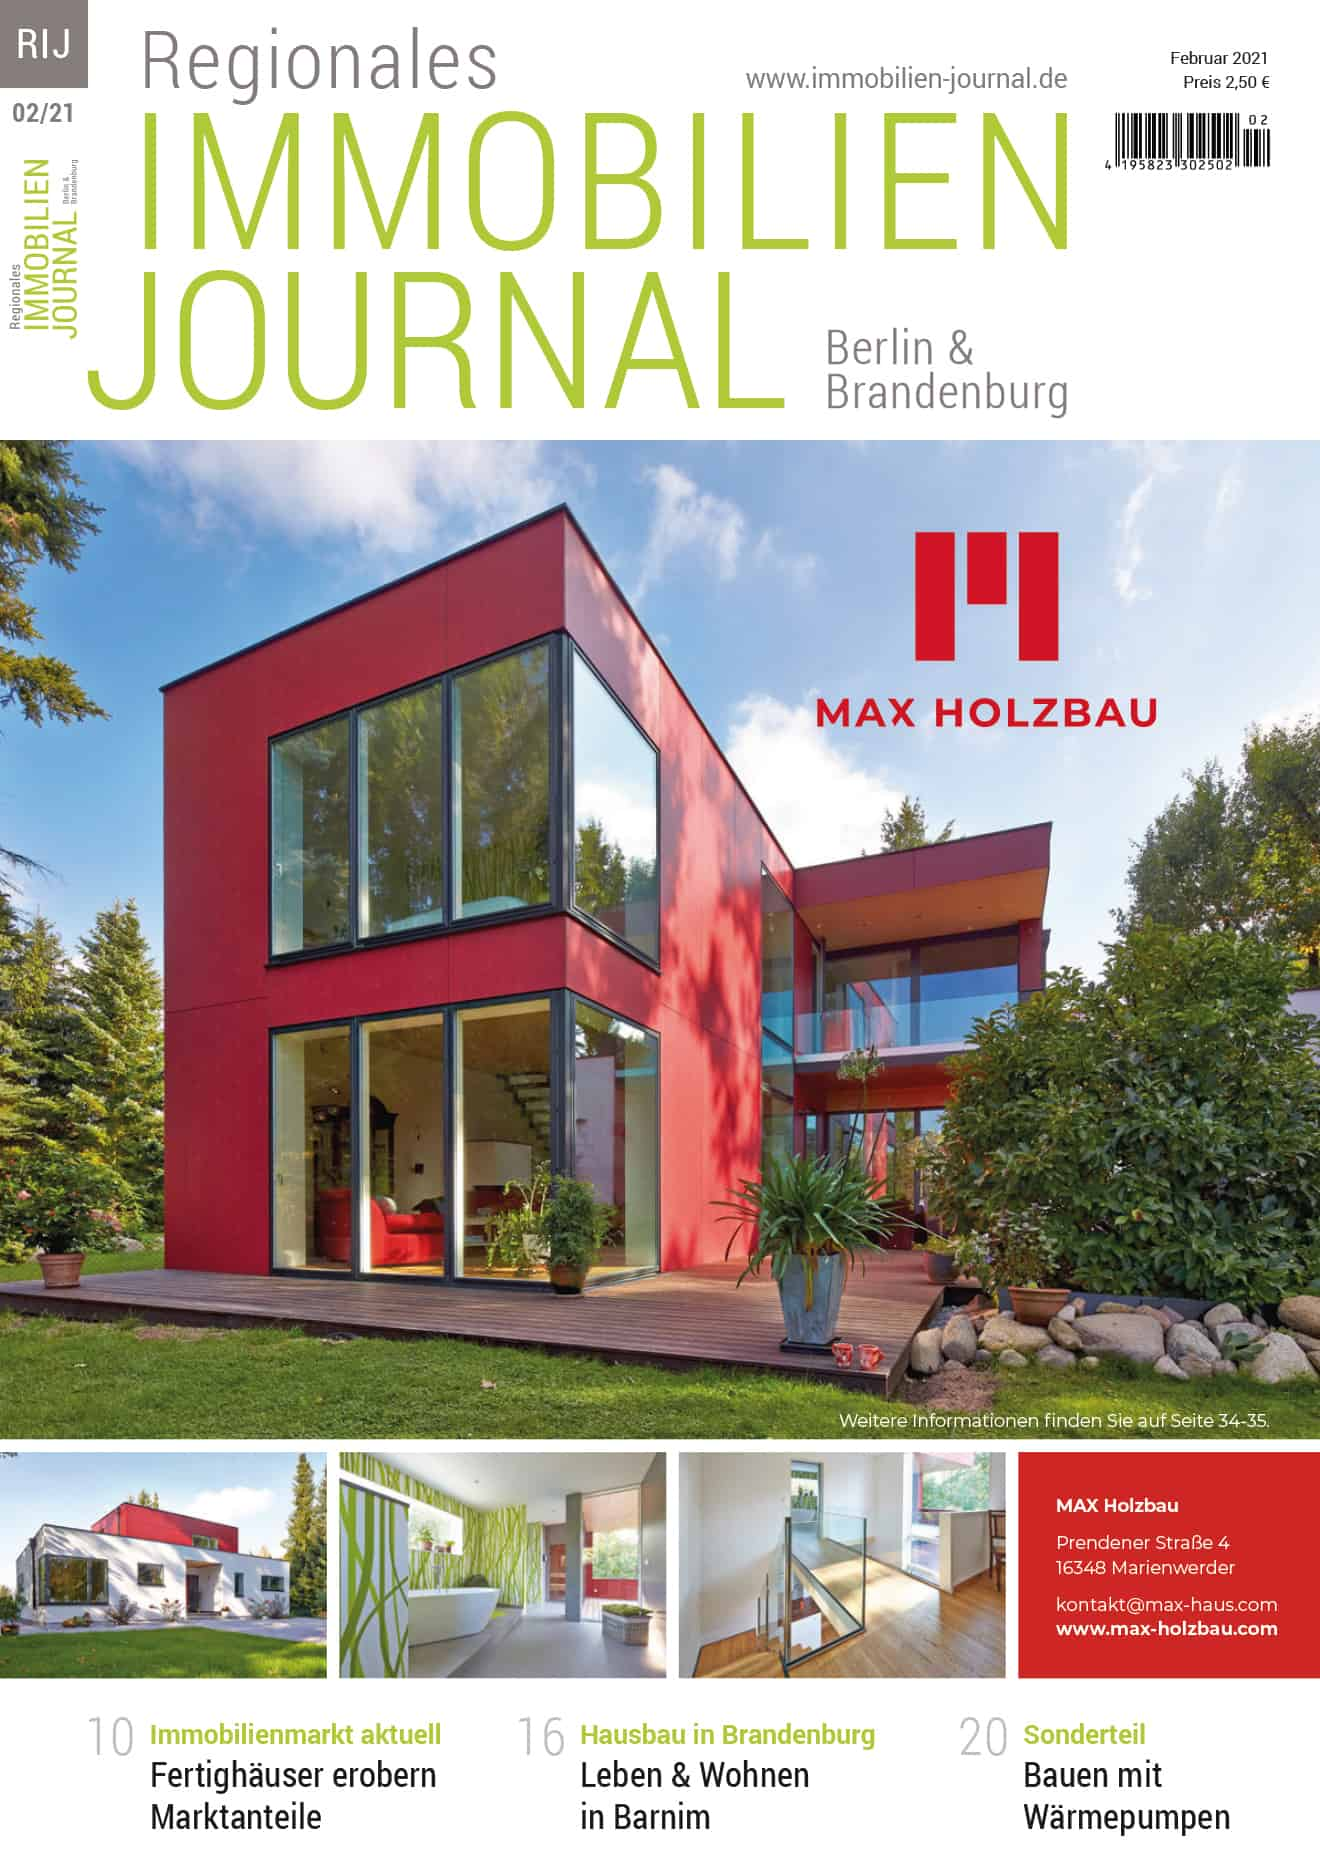 Regionales Immobilien Journal Berlin & Brandenburg 02-2021